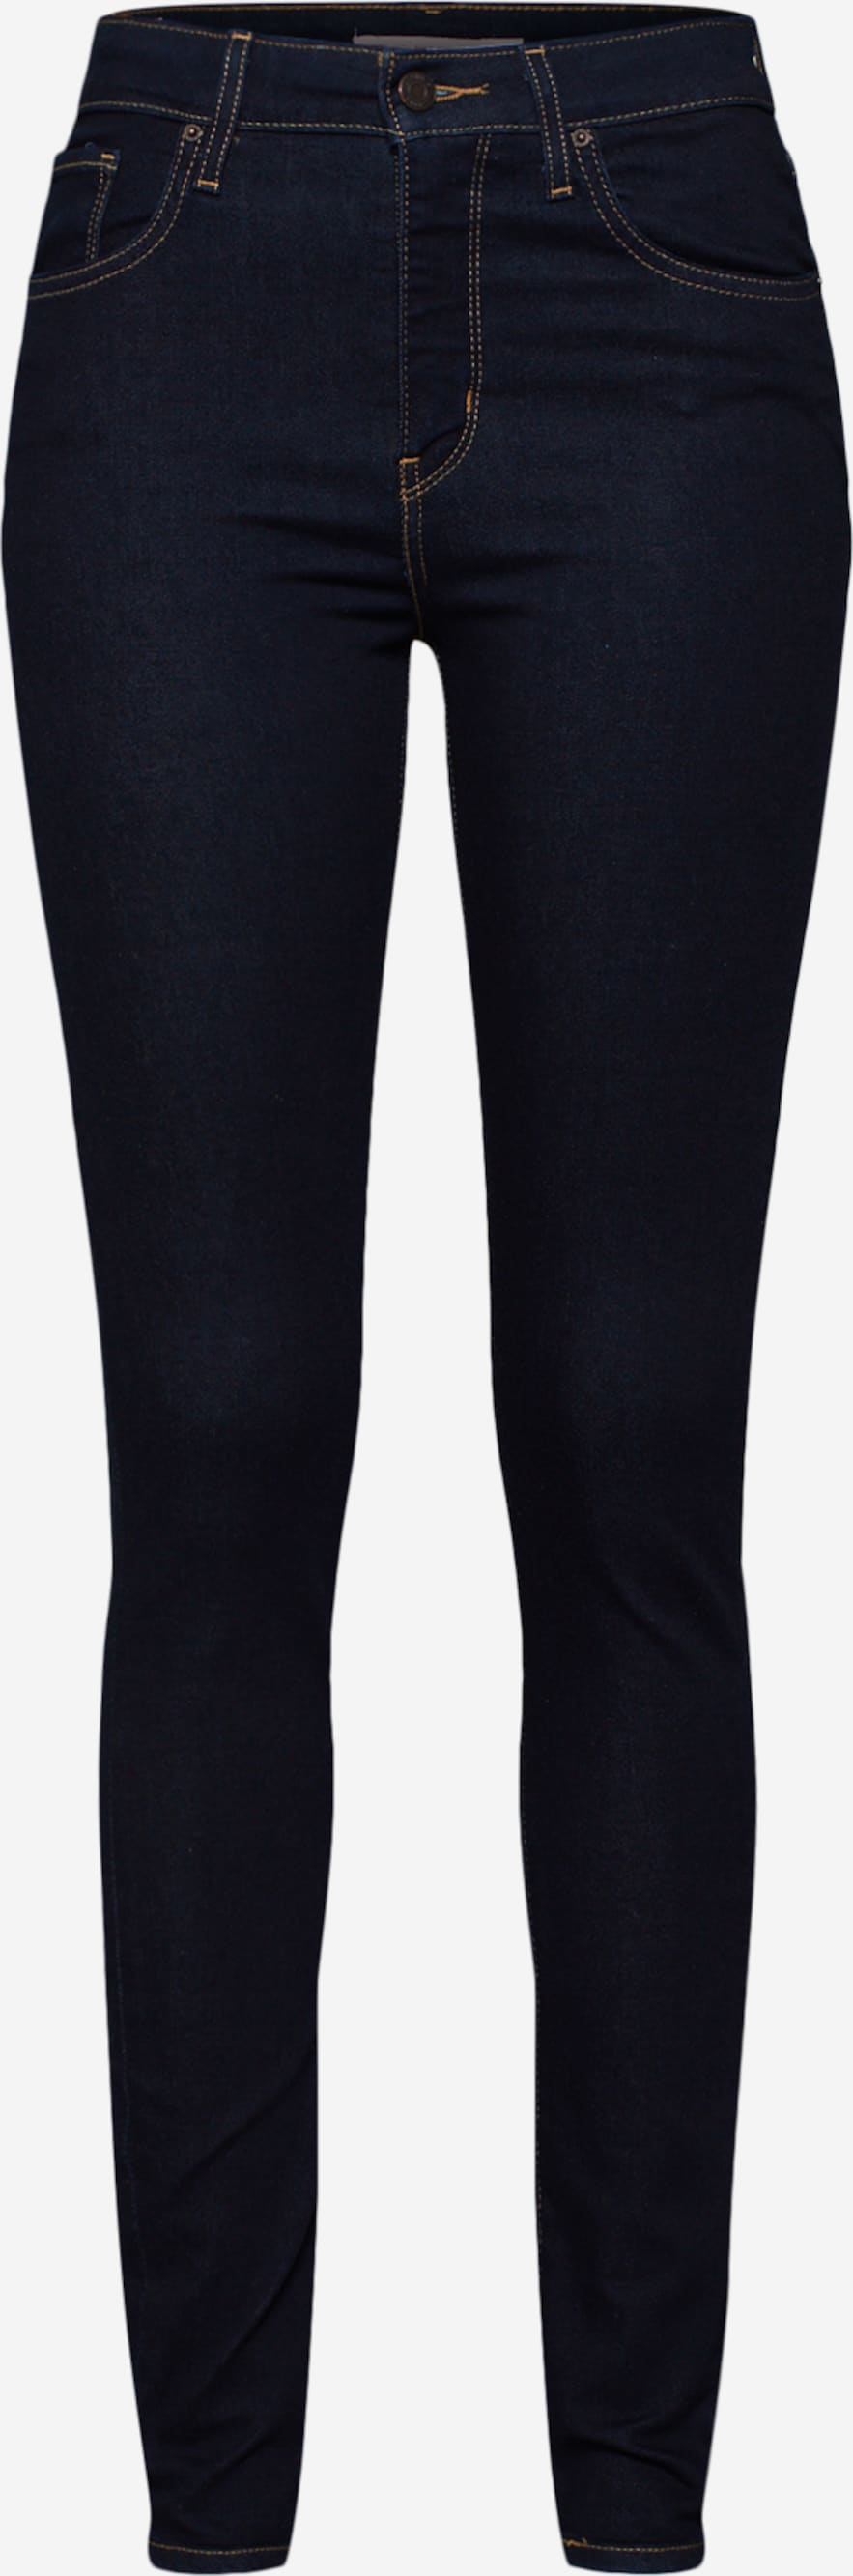 Levi's 721 HIGH RISE SKINNY TO THE NI